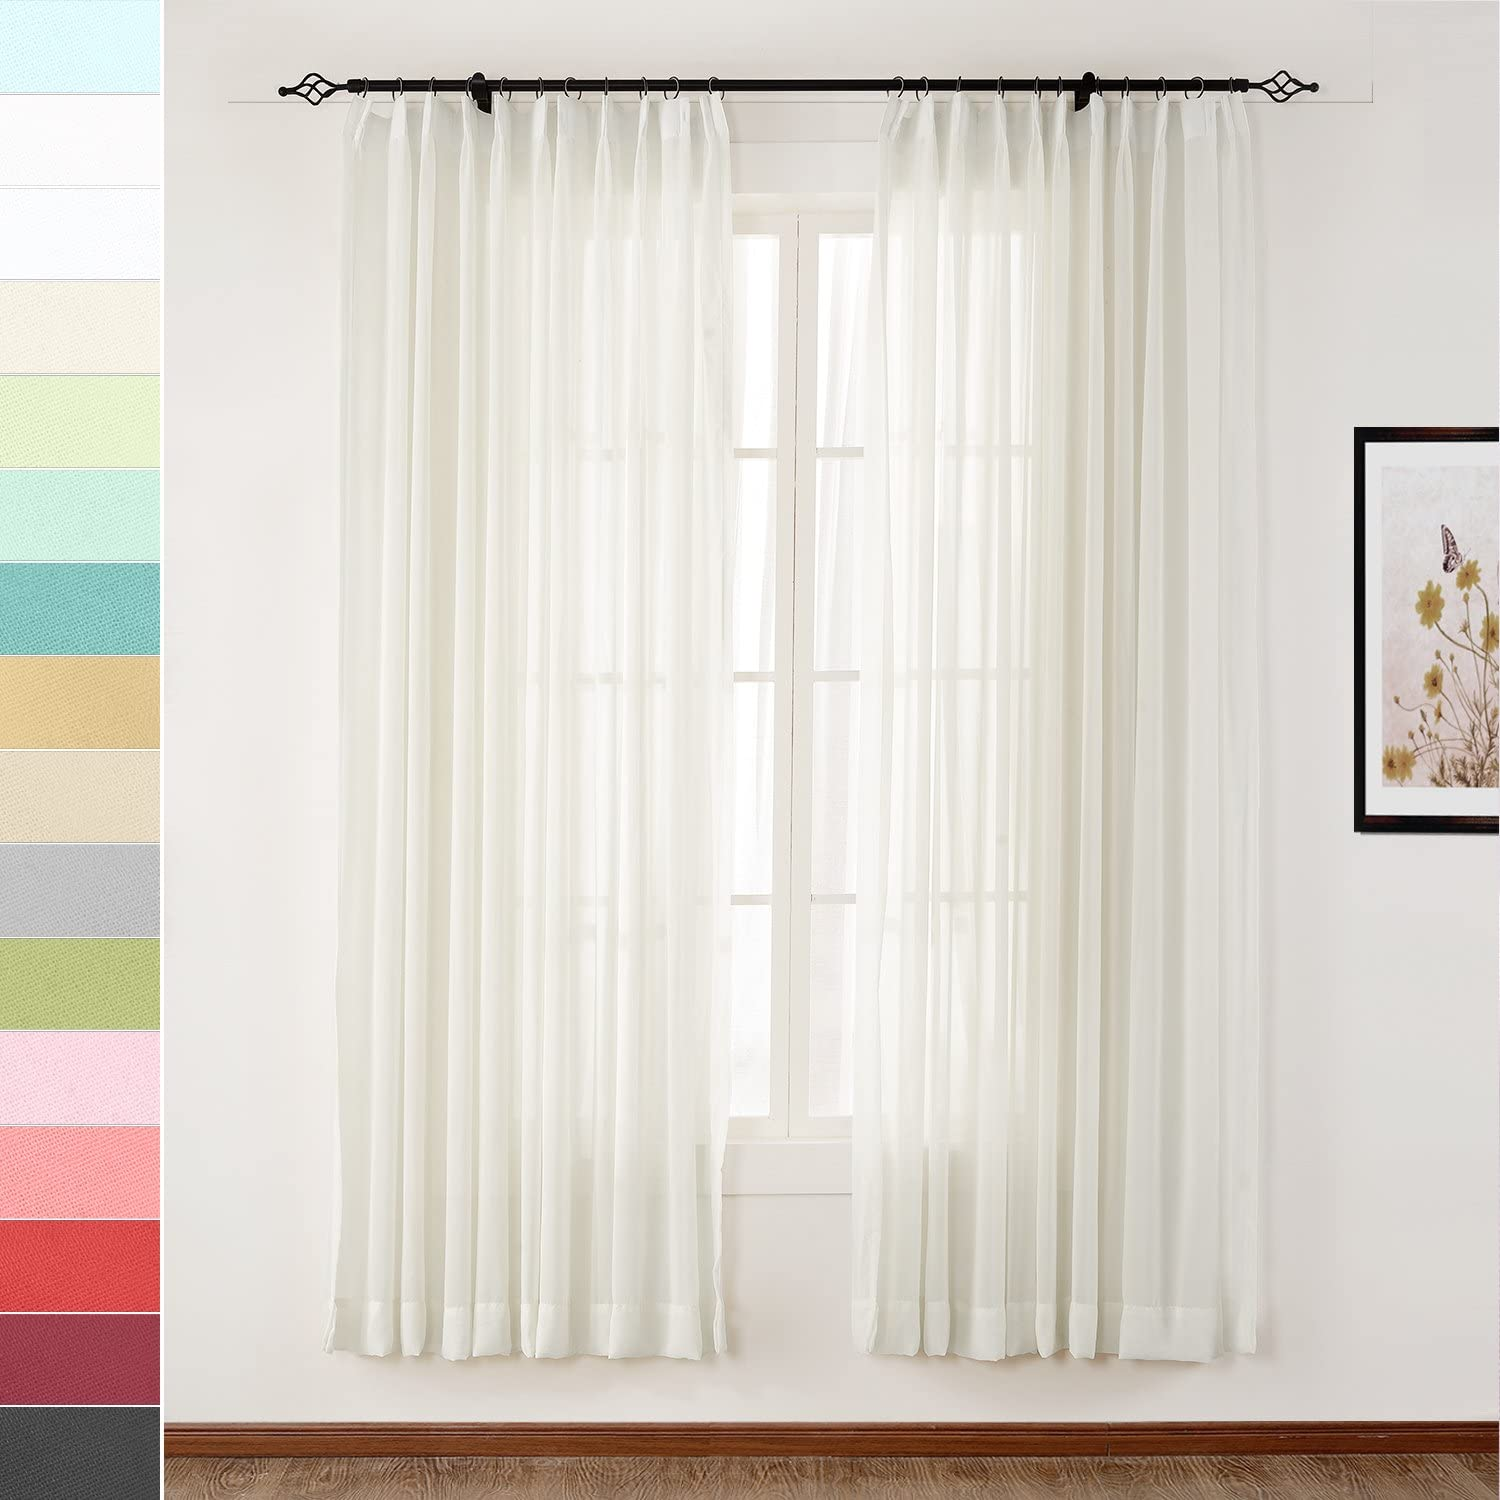 Macochico Elegant Semi Ranking TOP5 Sheer Curtains Pleat Baltimore Mall Pinch Dr Light Voile